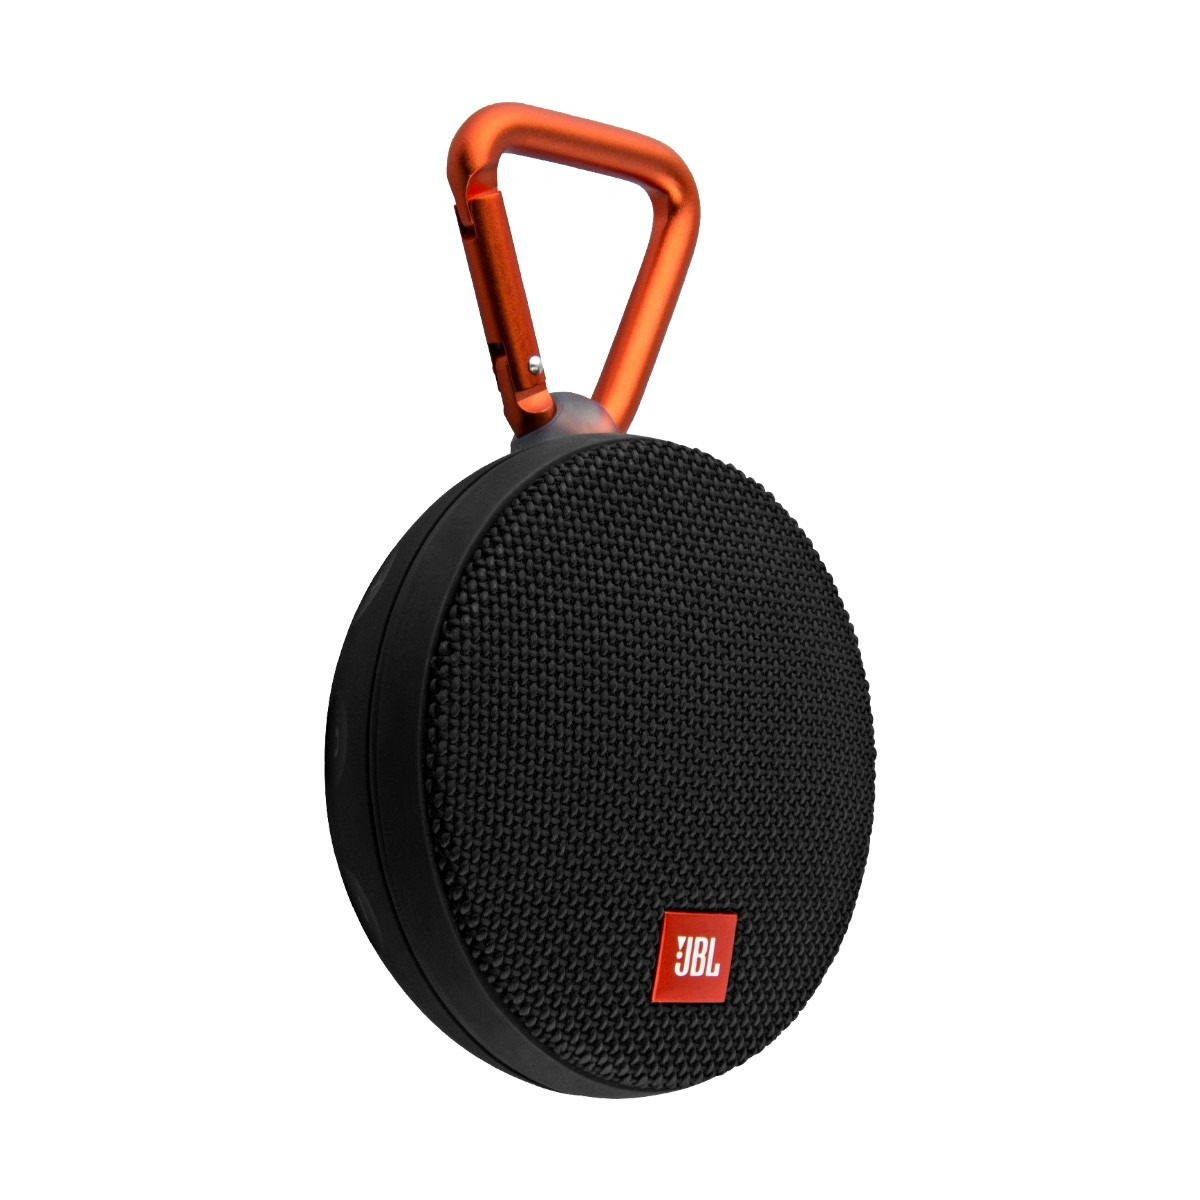 JBL Clip 8 Share JBL Clip 8 Black Portable Bluetooth Speaker